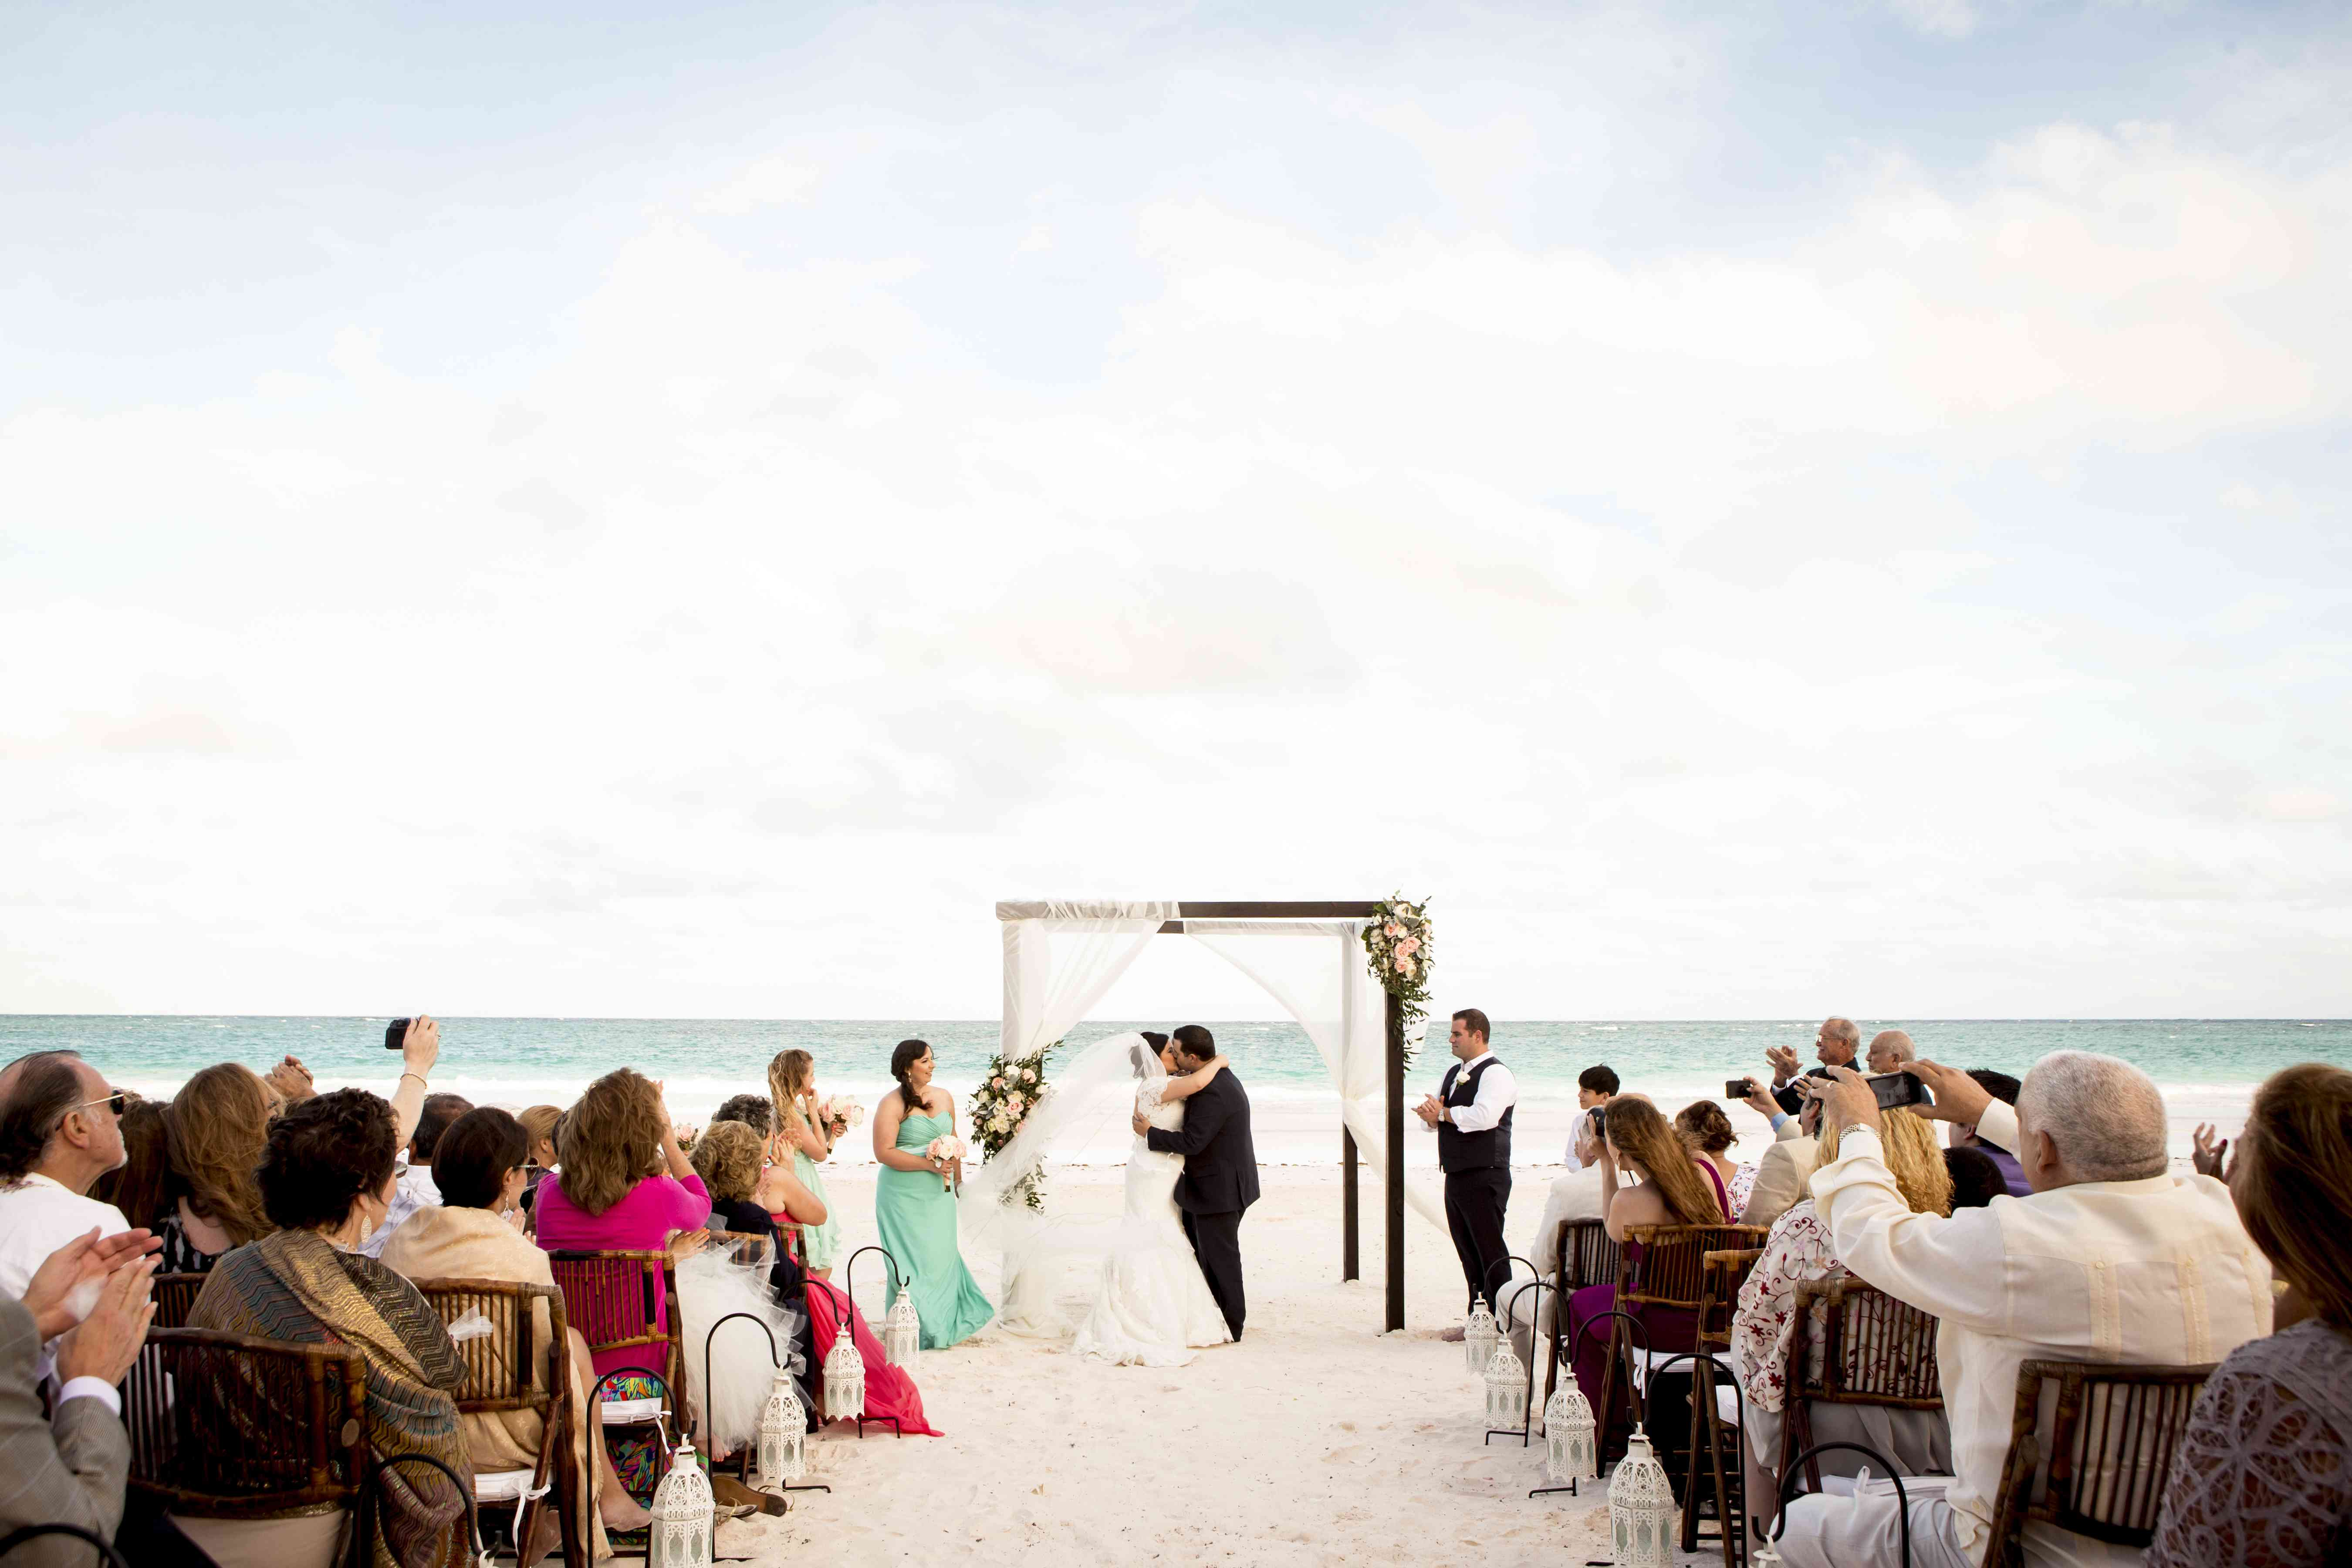 A destination wedding on the beach at Coral Sands Hotel, Harbour Island, Bahamas